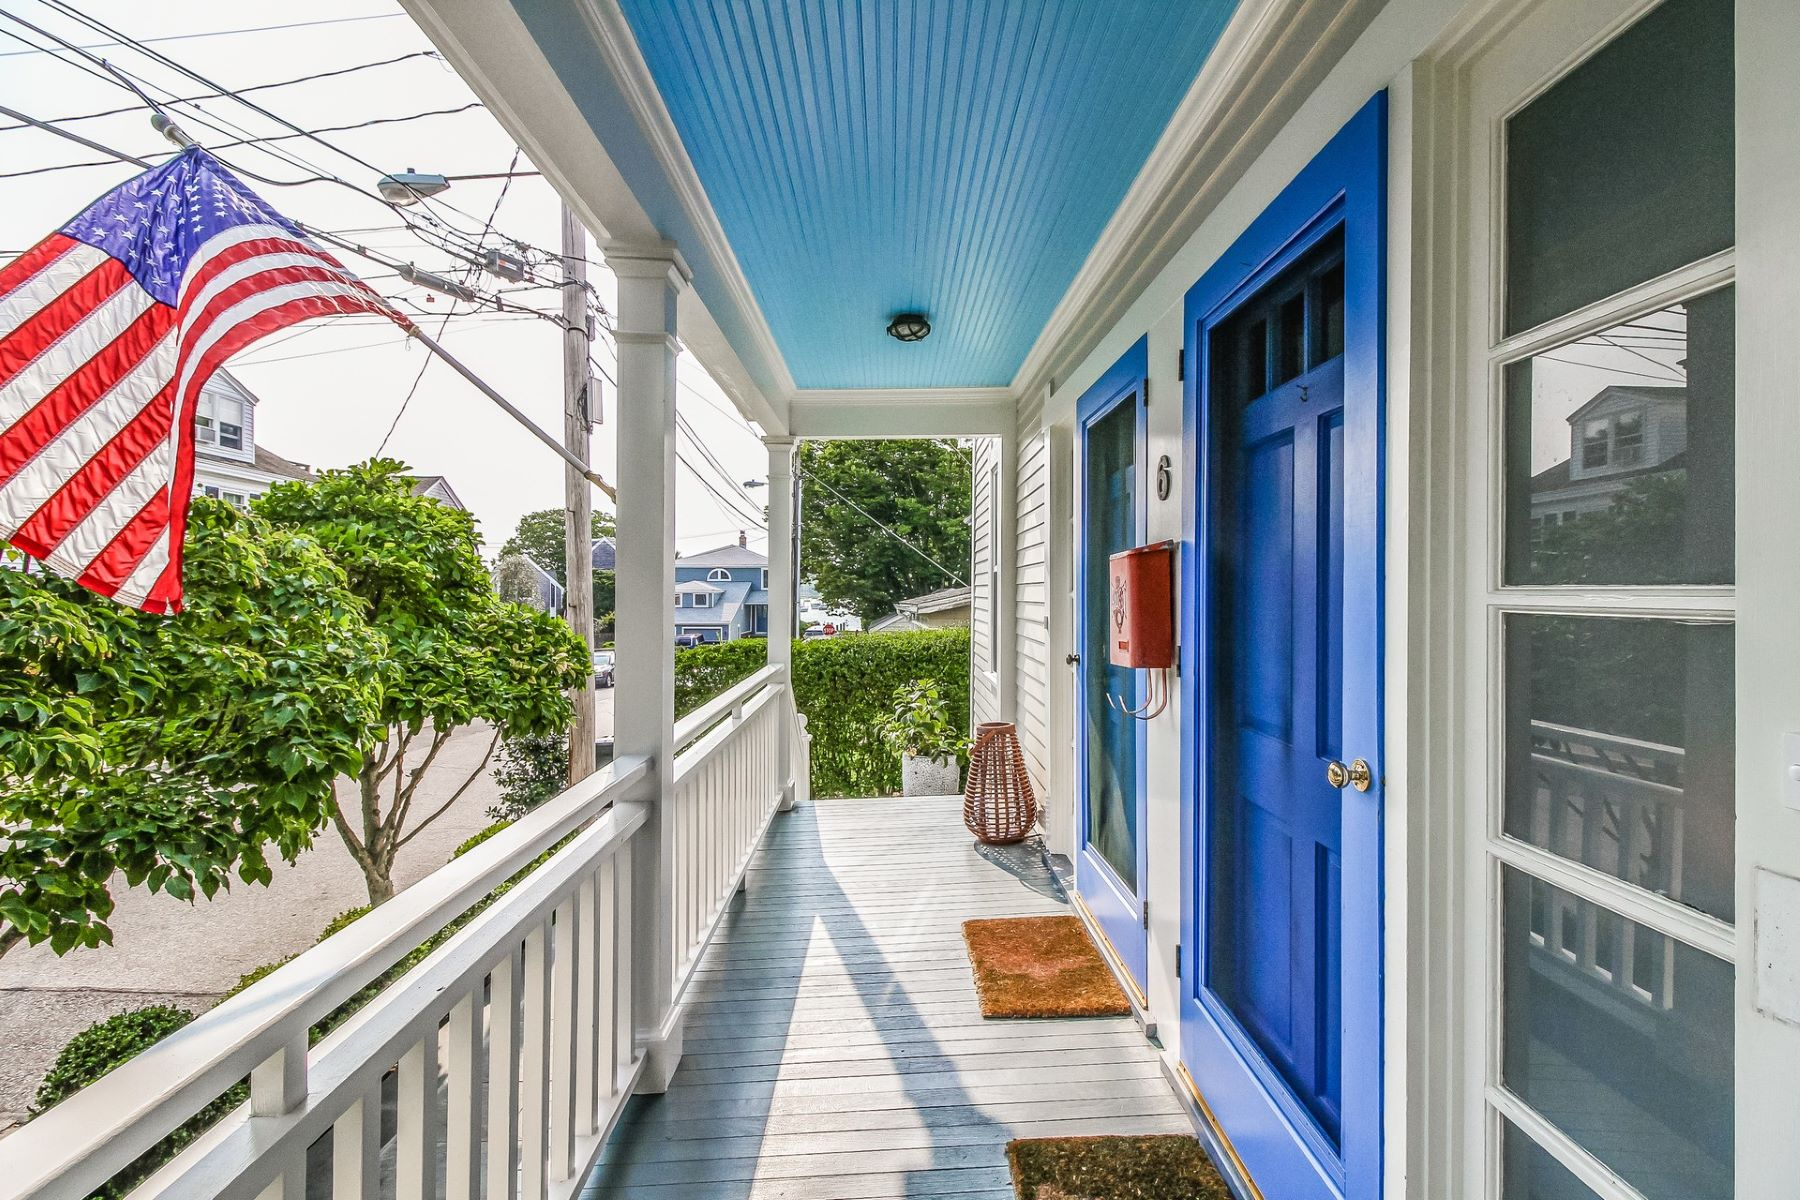 Single Family Homes for Sale at 6 Broad Street, Stonington, CT 6 Broad Street Stonington, Connecticut 06378 United States